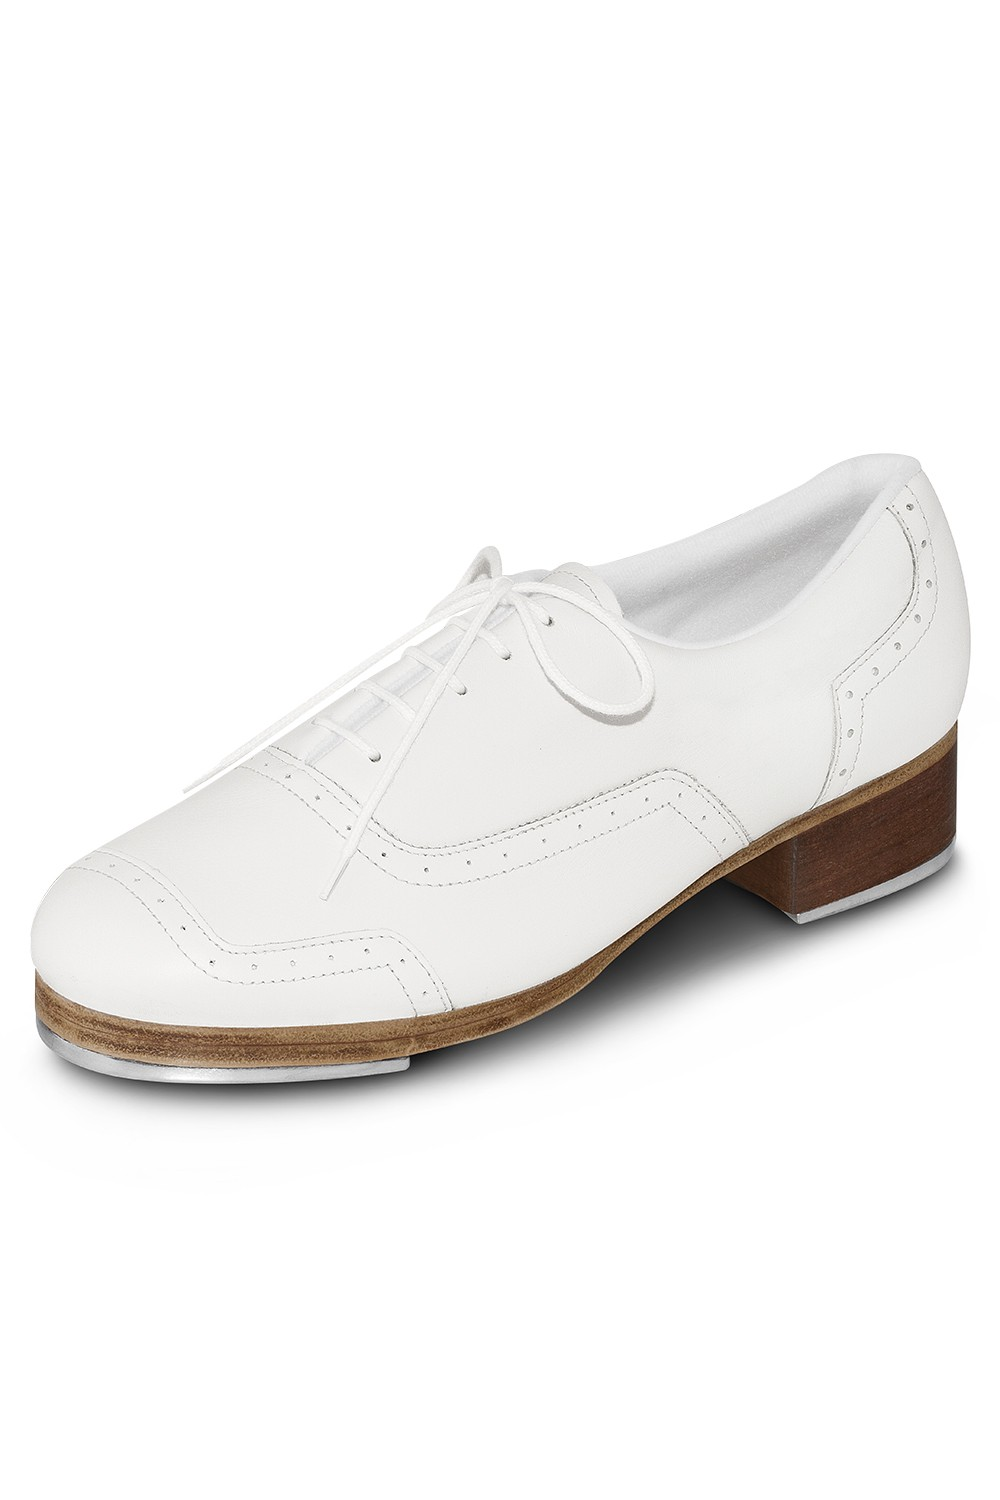 Jason Samuels Smith - Herren Men's Tap Shoes